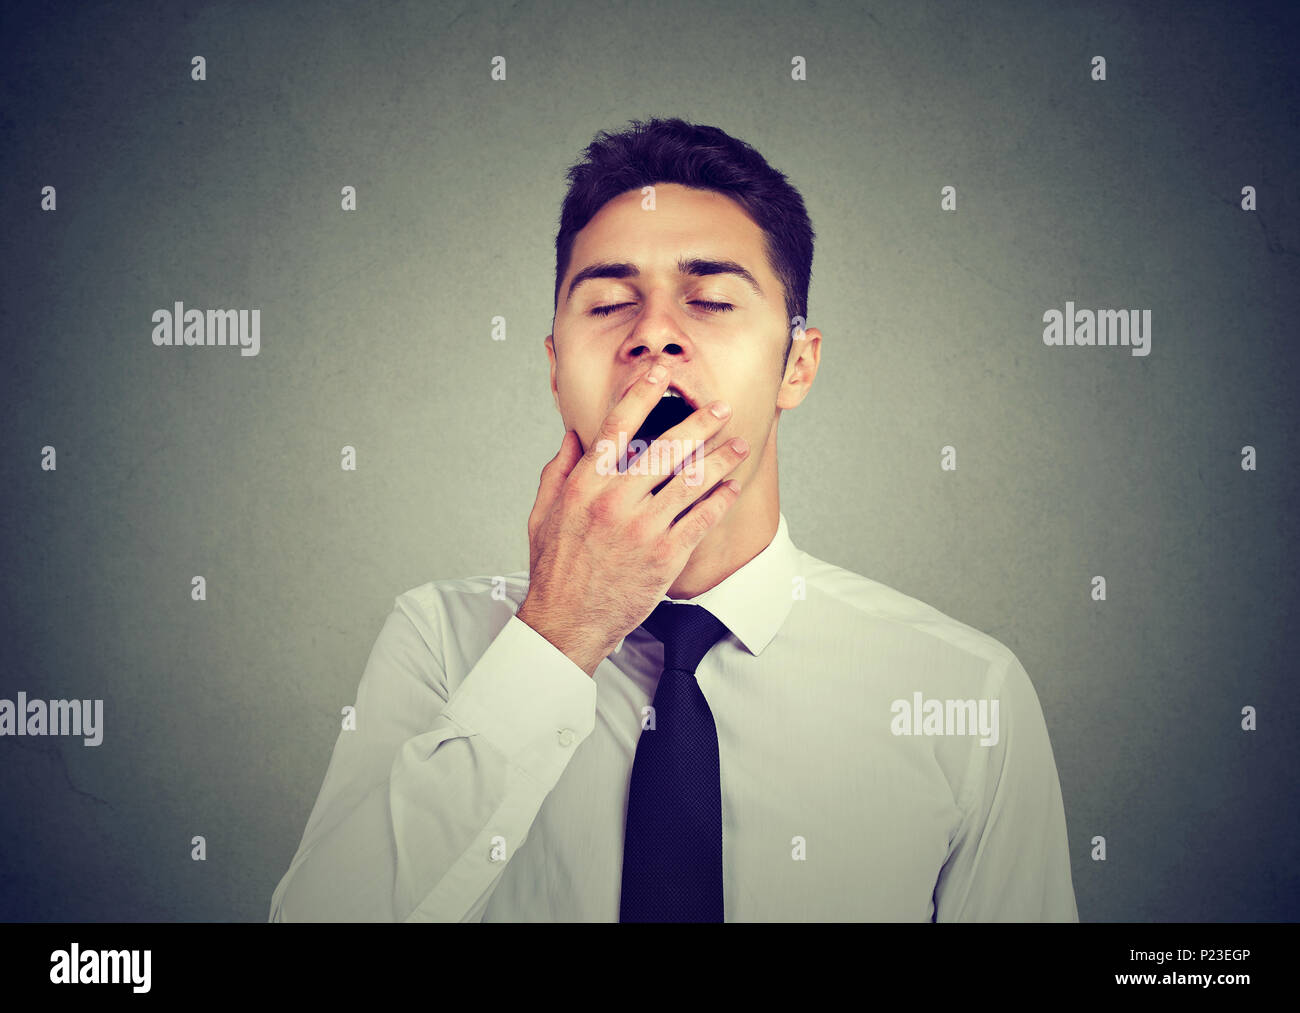 Sleepy young man yawning with hand over mouth - Stock Image